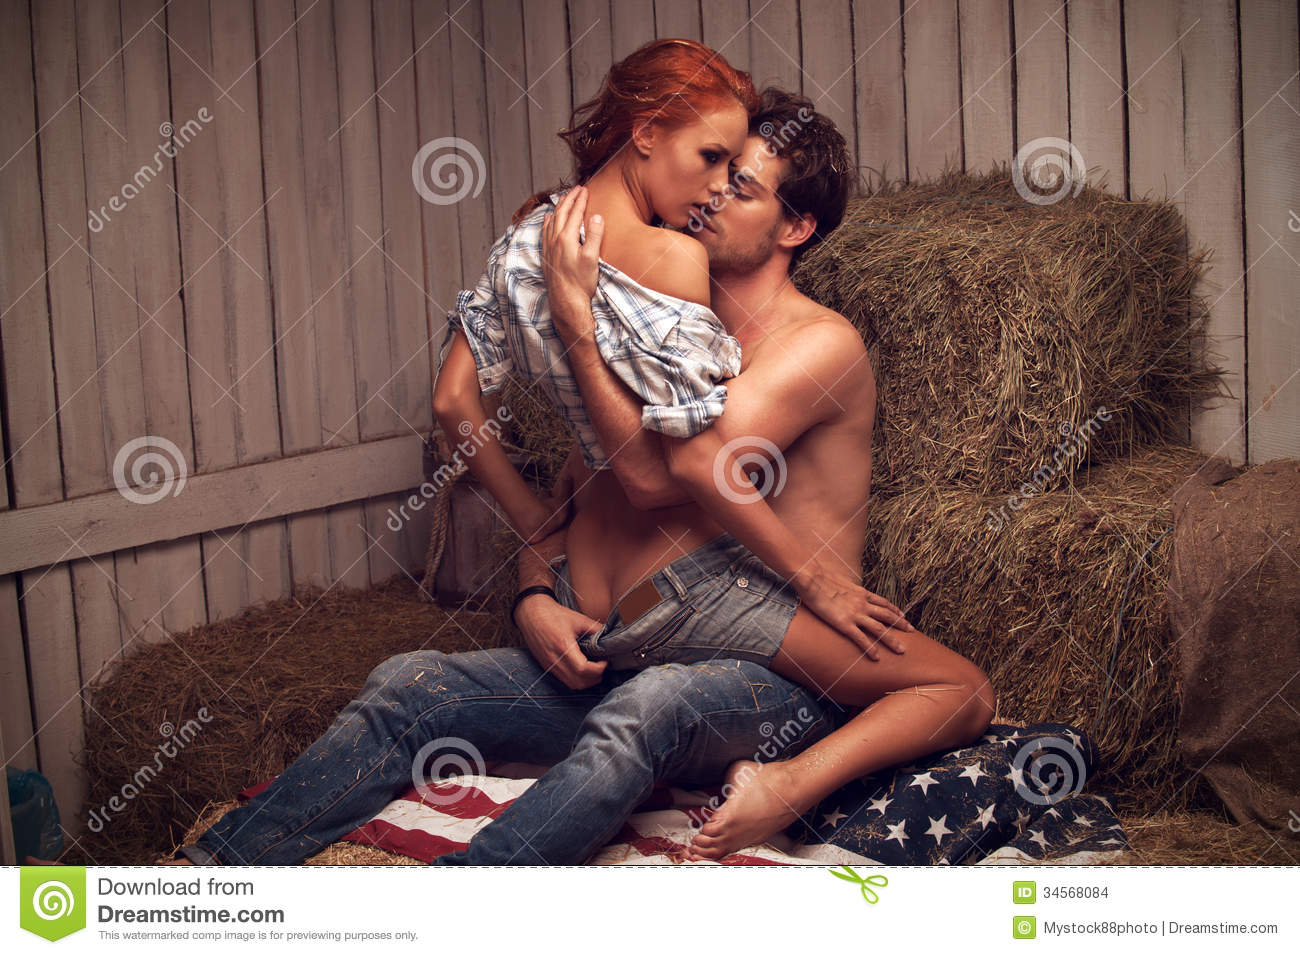 Sexy women kissing men